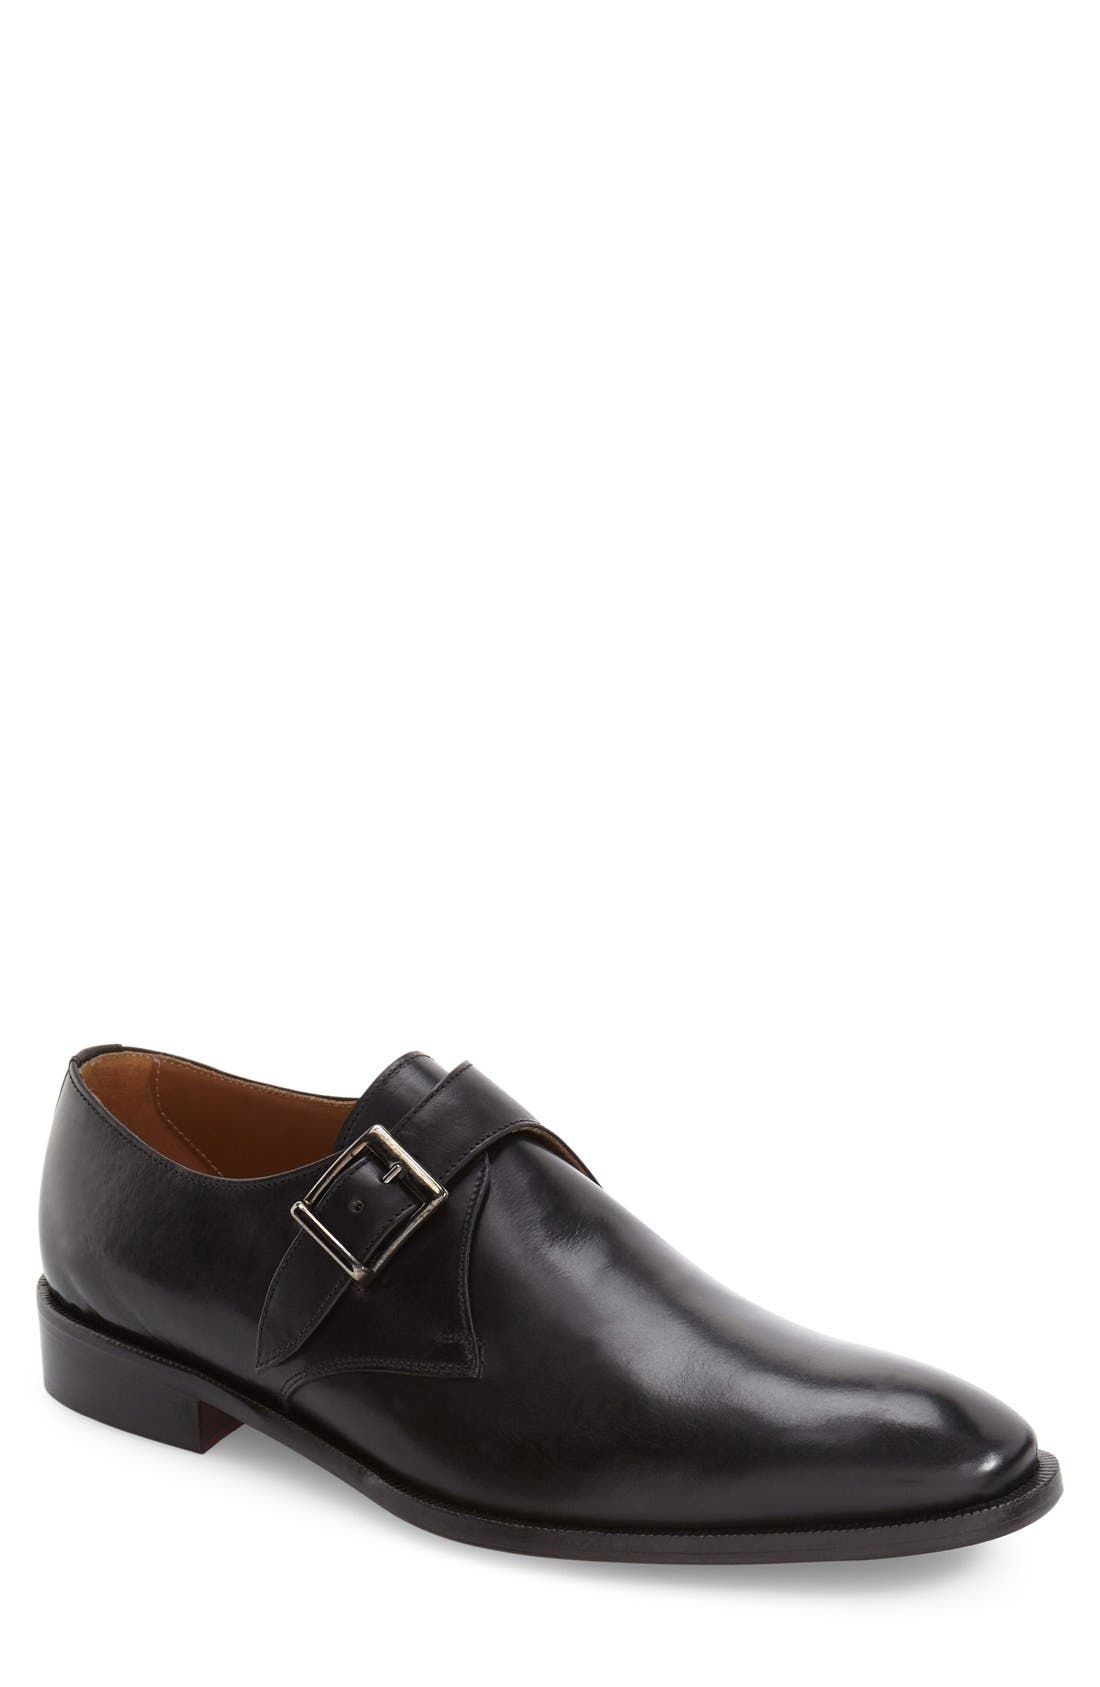 Suit Coat Monk Strap Shoe,                             Main thumbnail 1, color,                             001